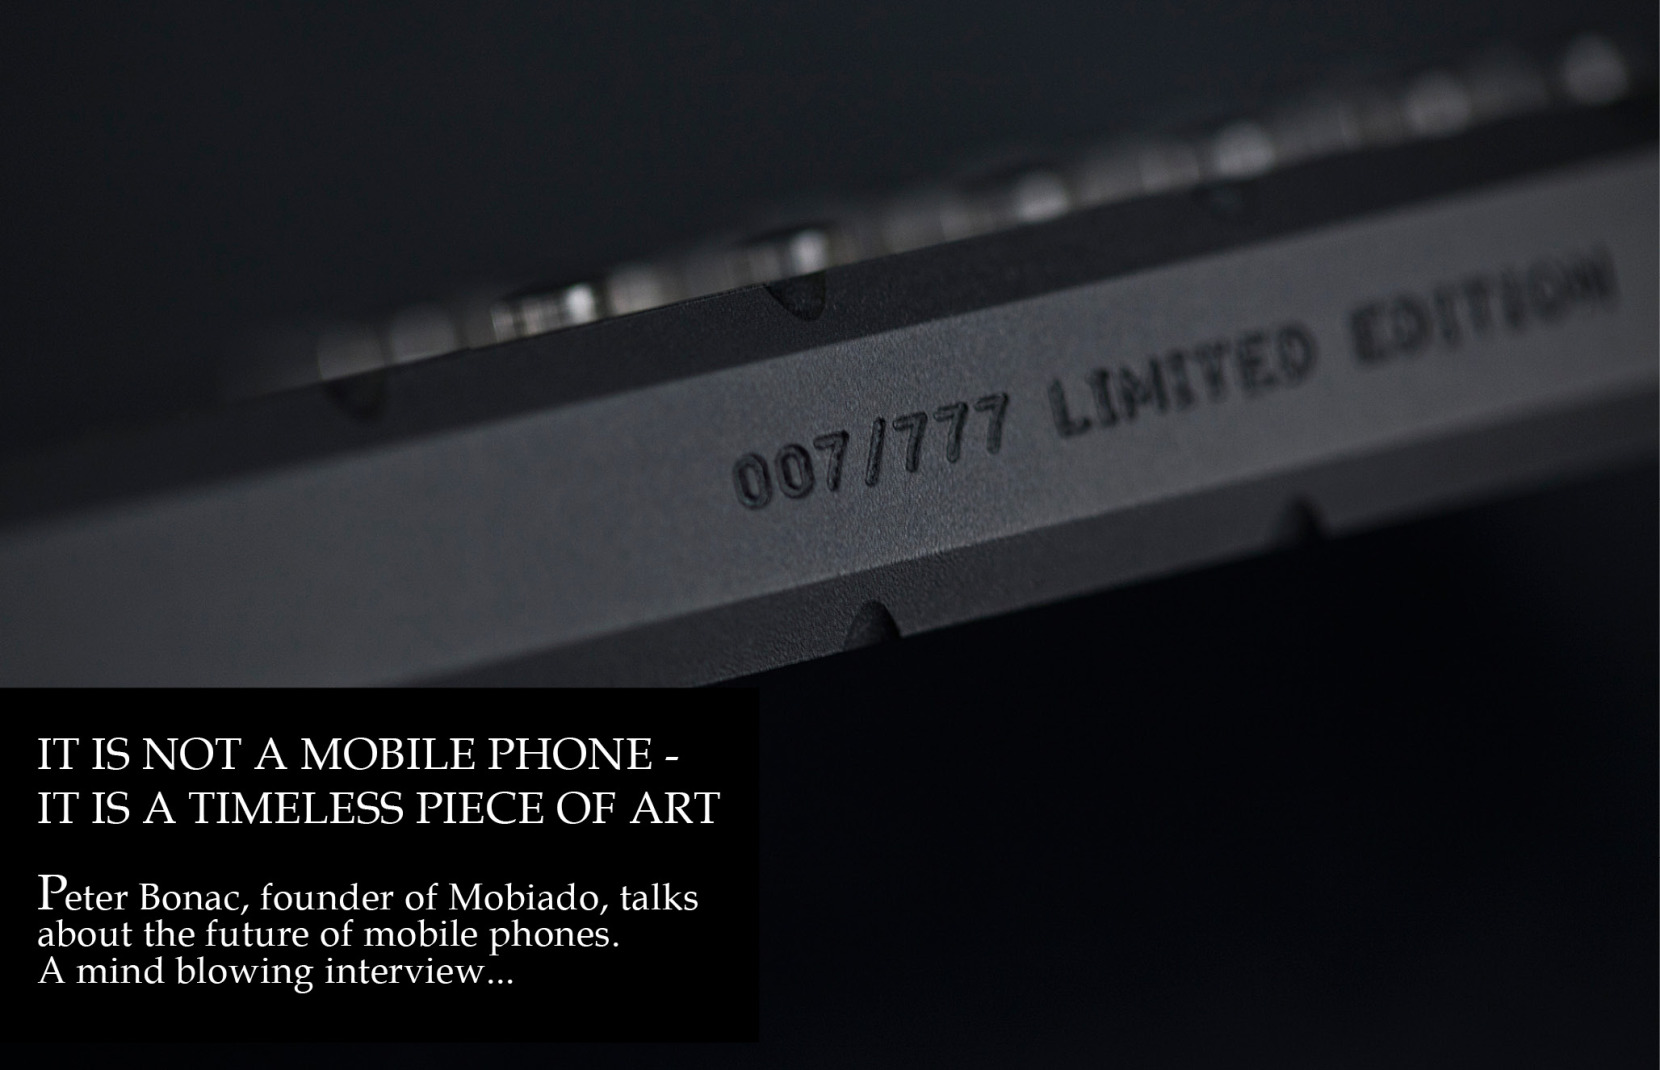 WTL_Label_To_Watch_Mobiado_Mobile_Phone_1